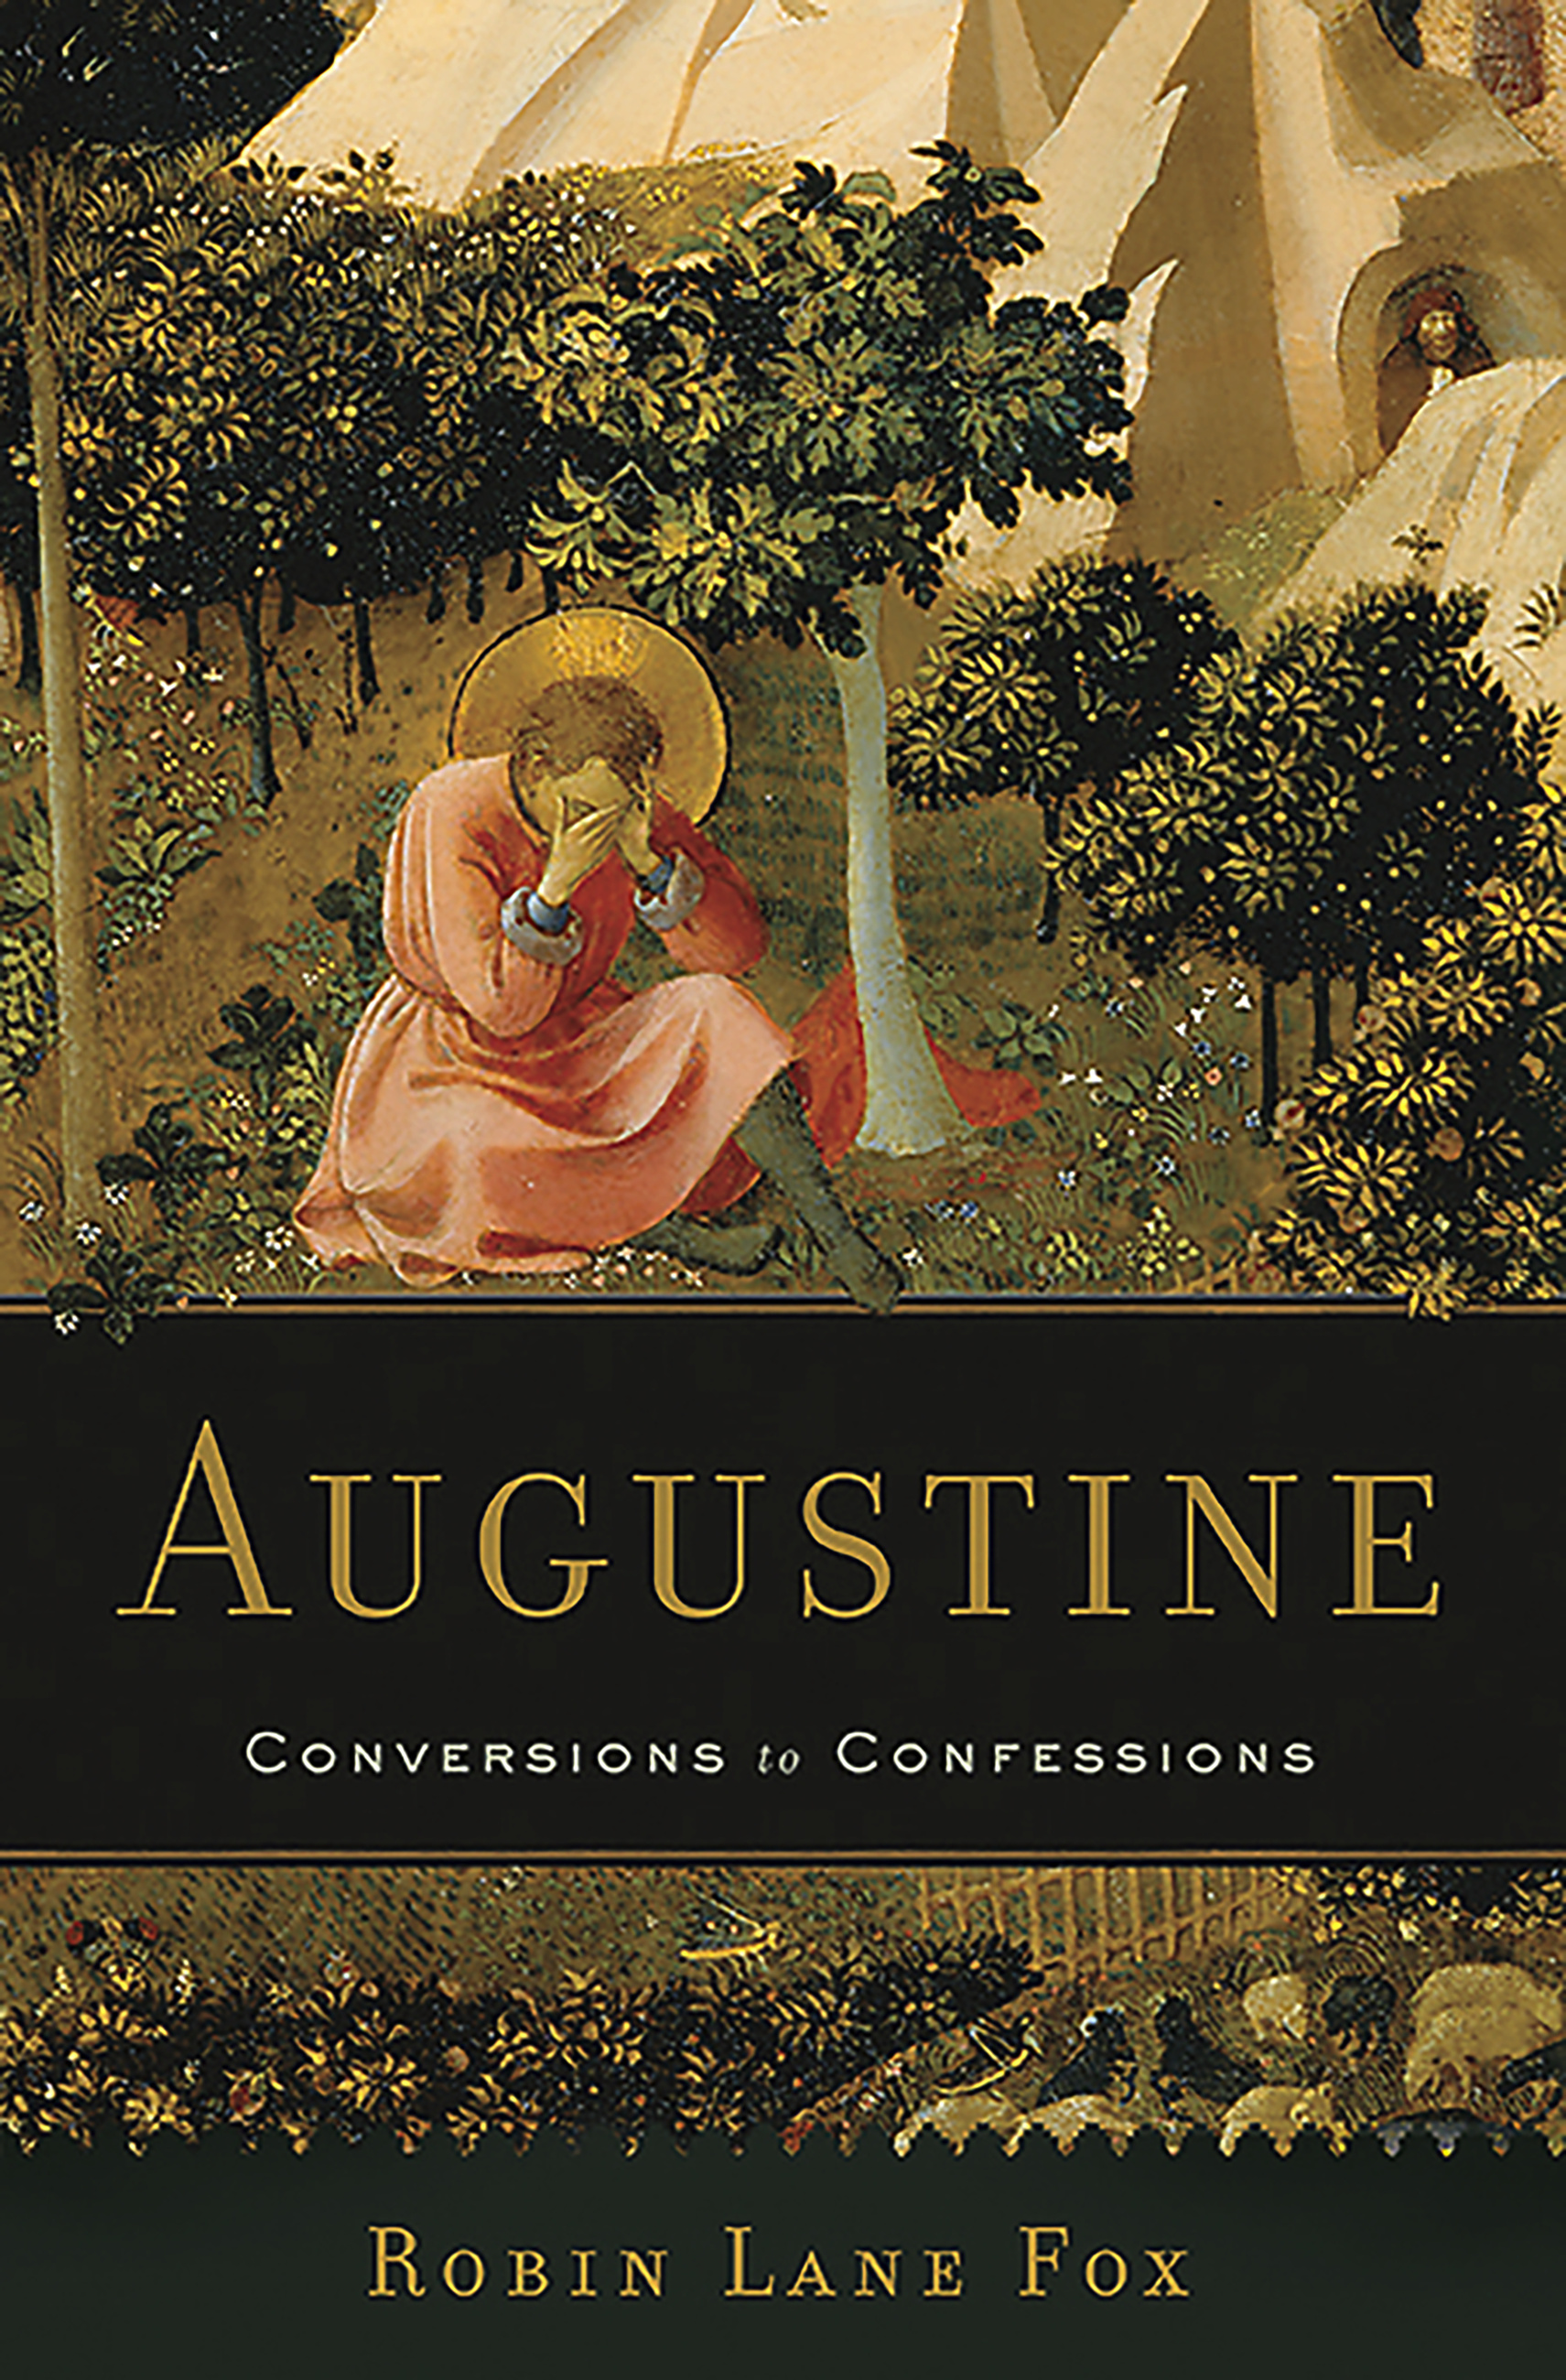 augustines confessions Augustine's confessions is not an autobiography in the literal sense, but is rather an autobiographical framework for a religious, moral, theological, and philosophical text augustine explores the nature of god and sin within the context of a christian man's life.